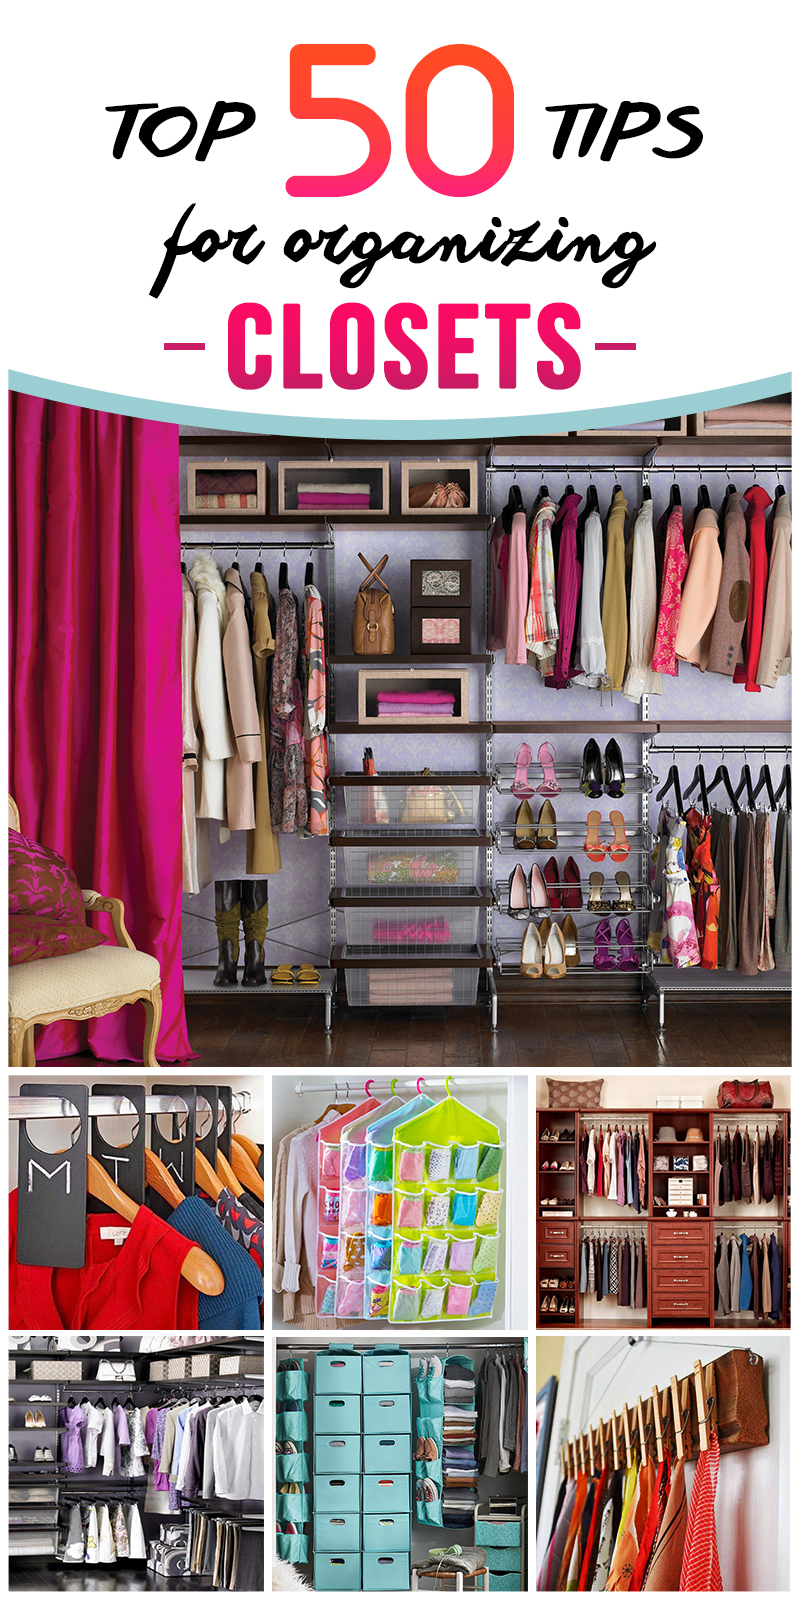 Excellent design your closet organizer roselawnlutheran for Organizing ideas for closets